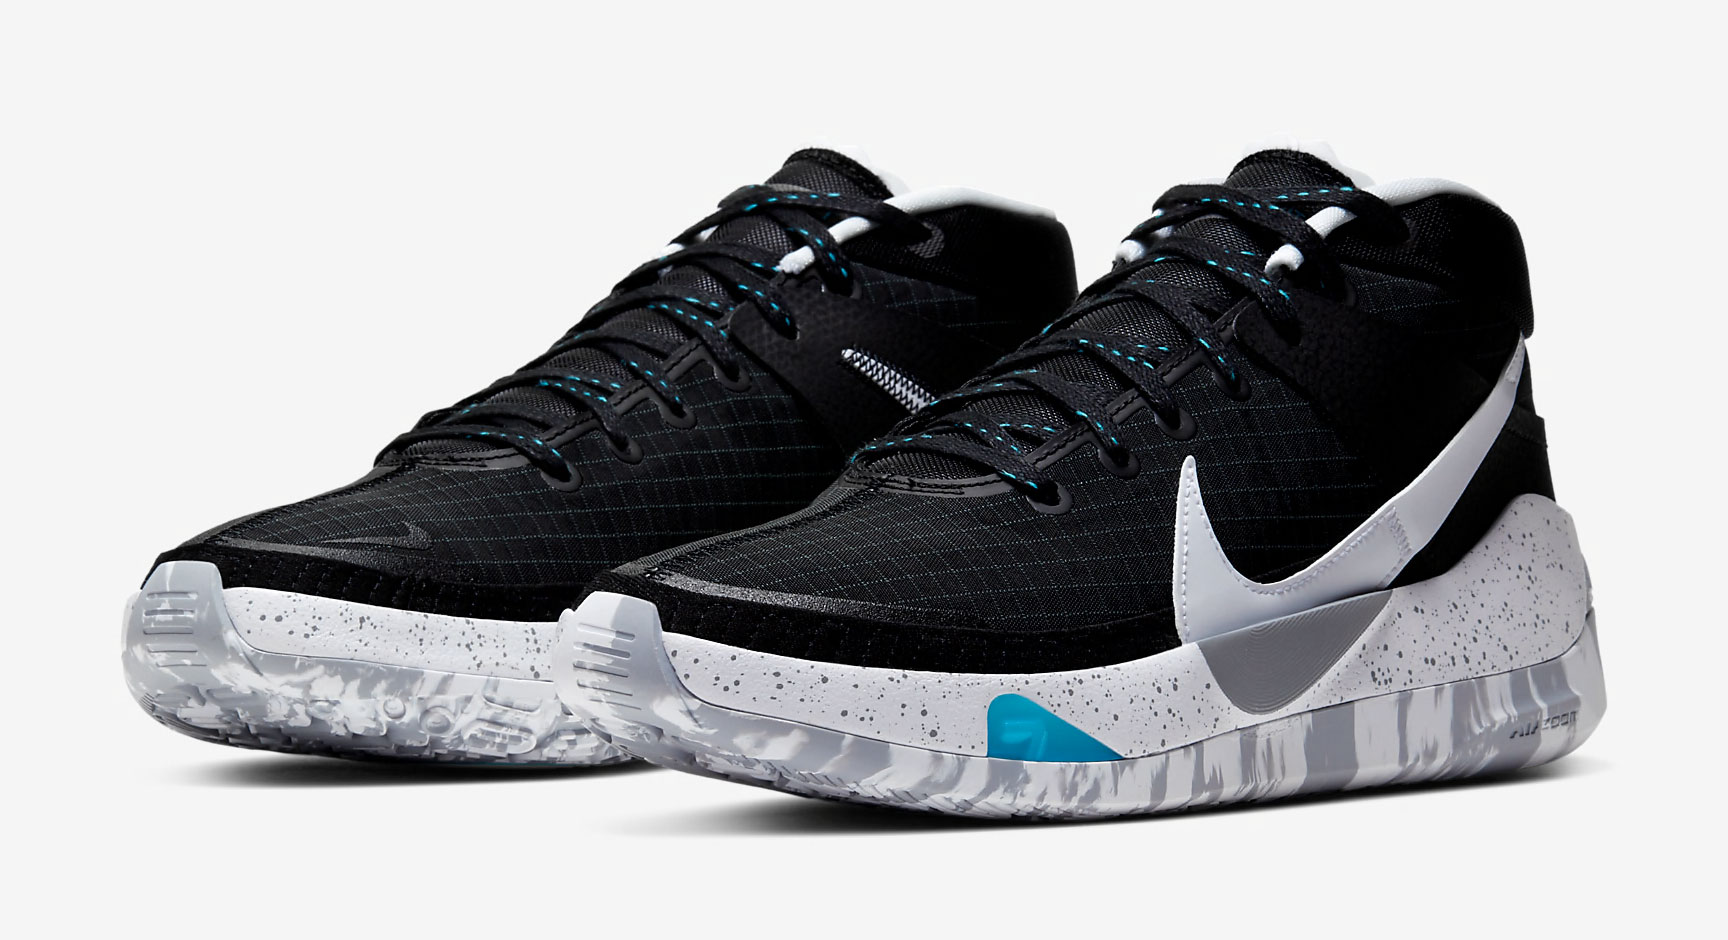 nike-kd-13-black-white-wolf-grey